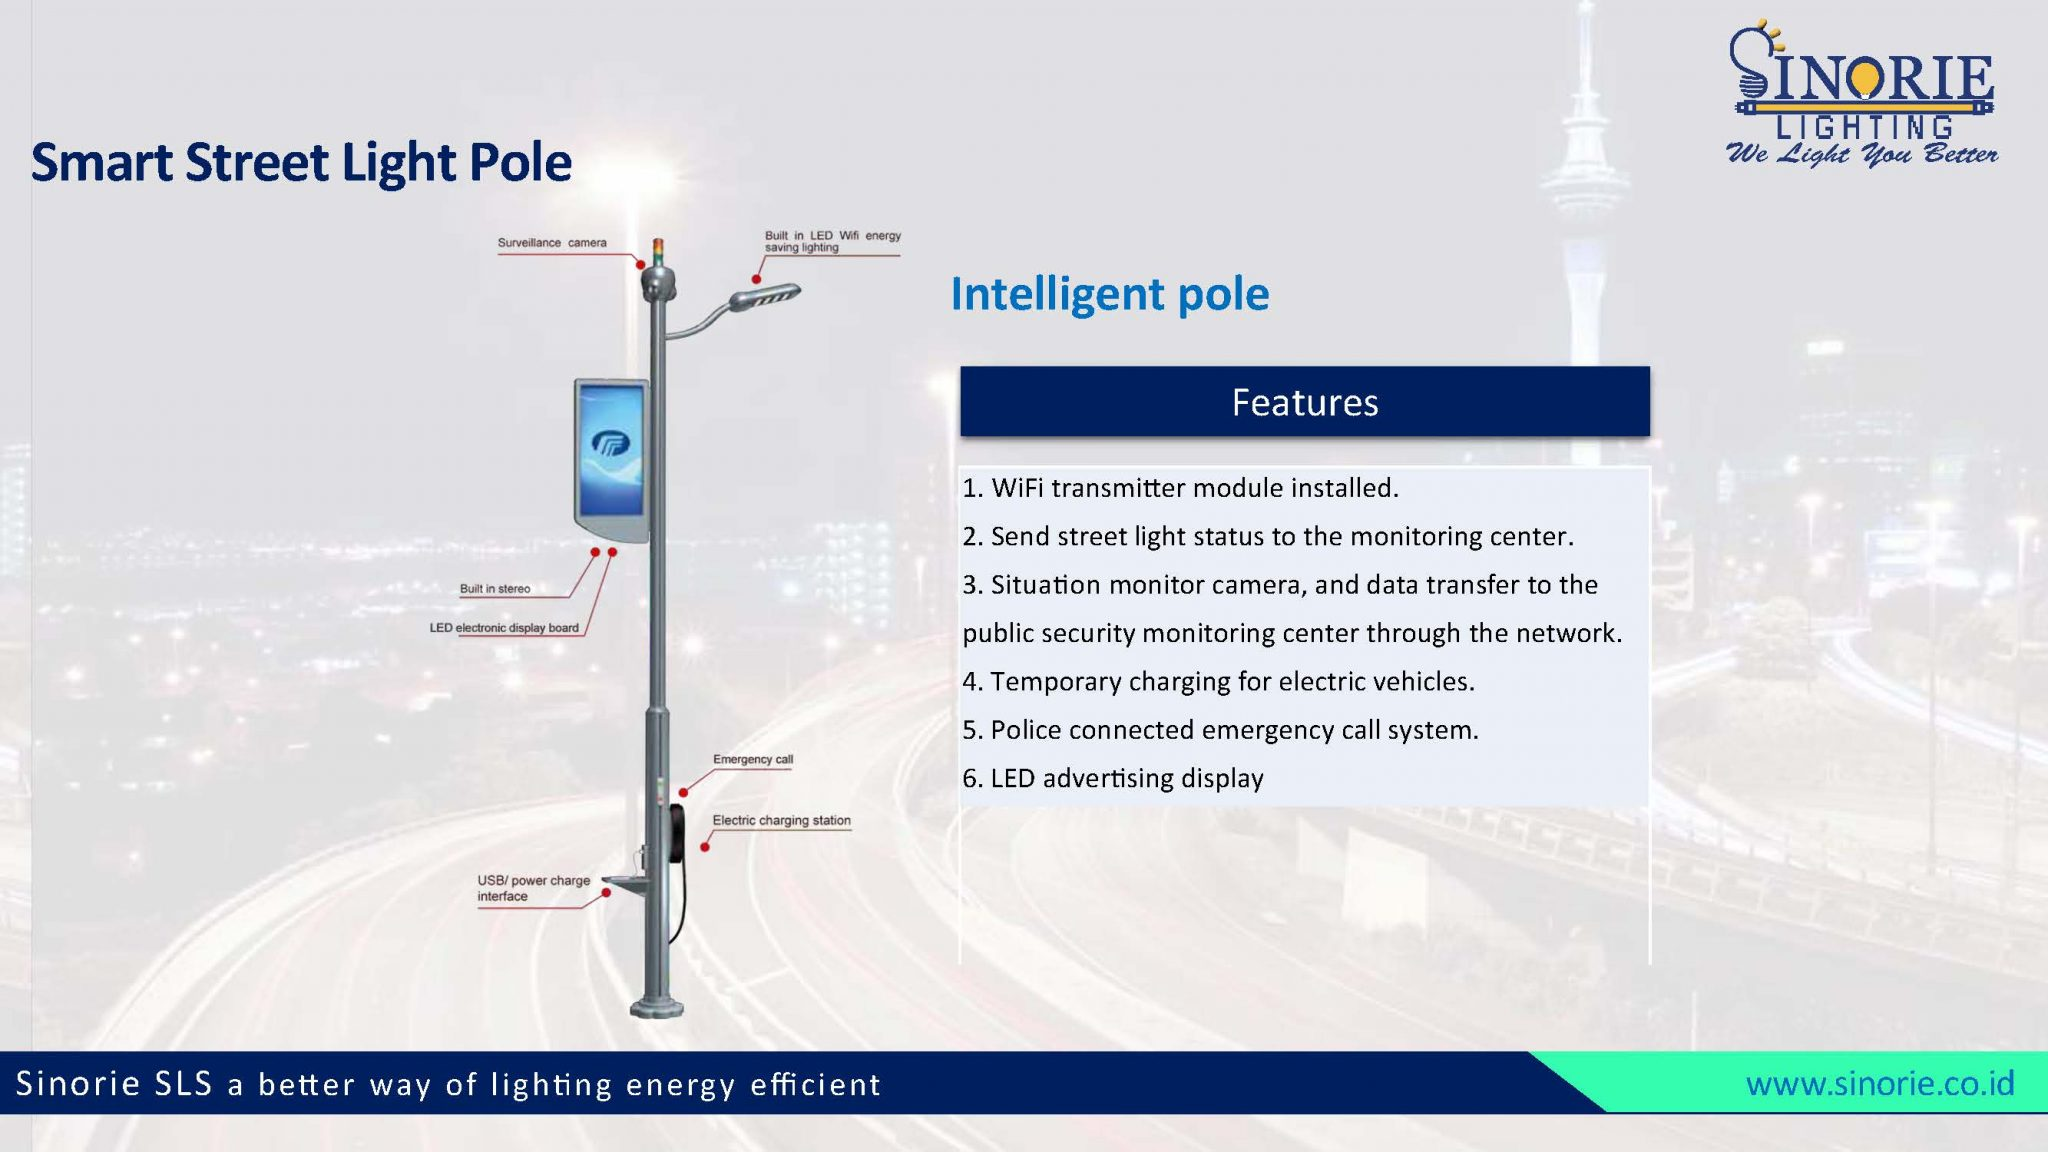 Smart Street Lighting Sinorie